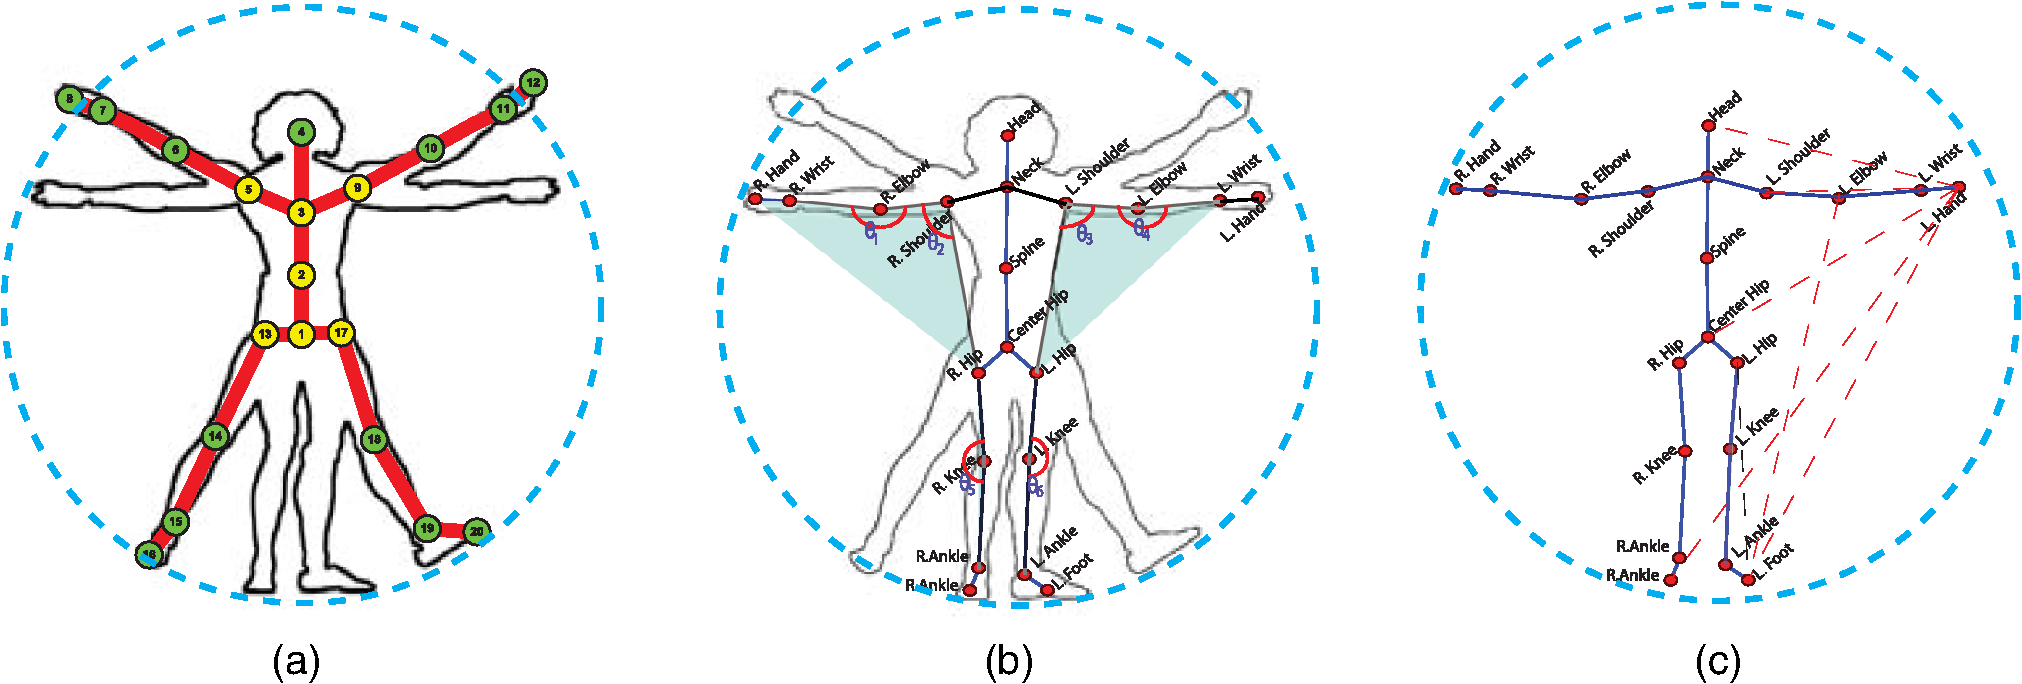 Toward Three Dimensional Human Action Recognition Using A Parts Diagram Moreover Microsoft Laptop Puter Clip Art On Of Example Geometric Relational Features For Typical Skeleton Layout B The Predefined Angles Between Limbs